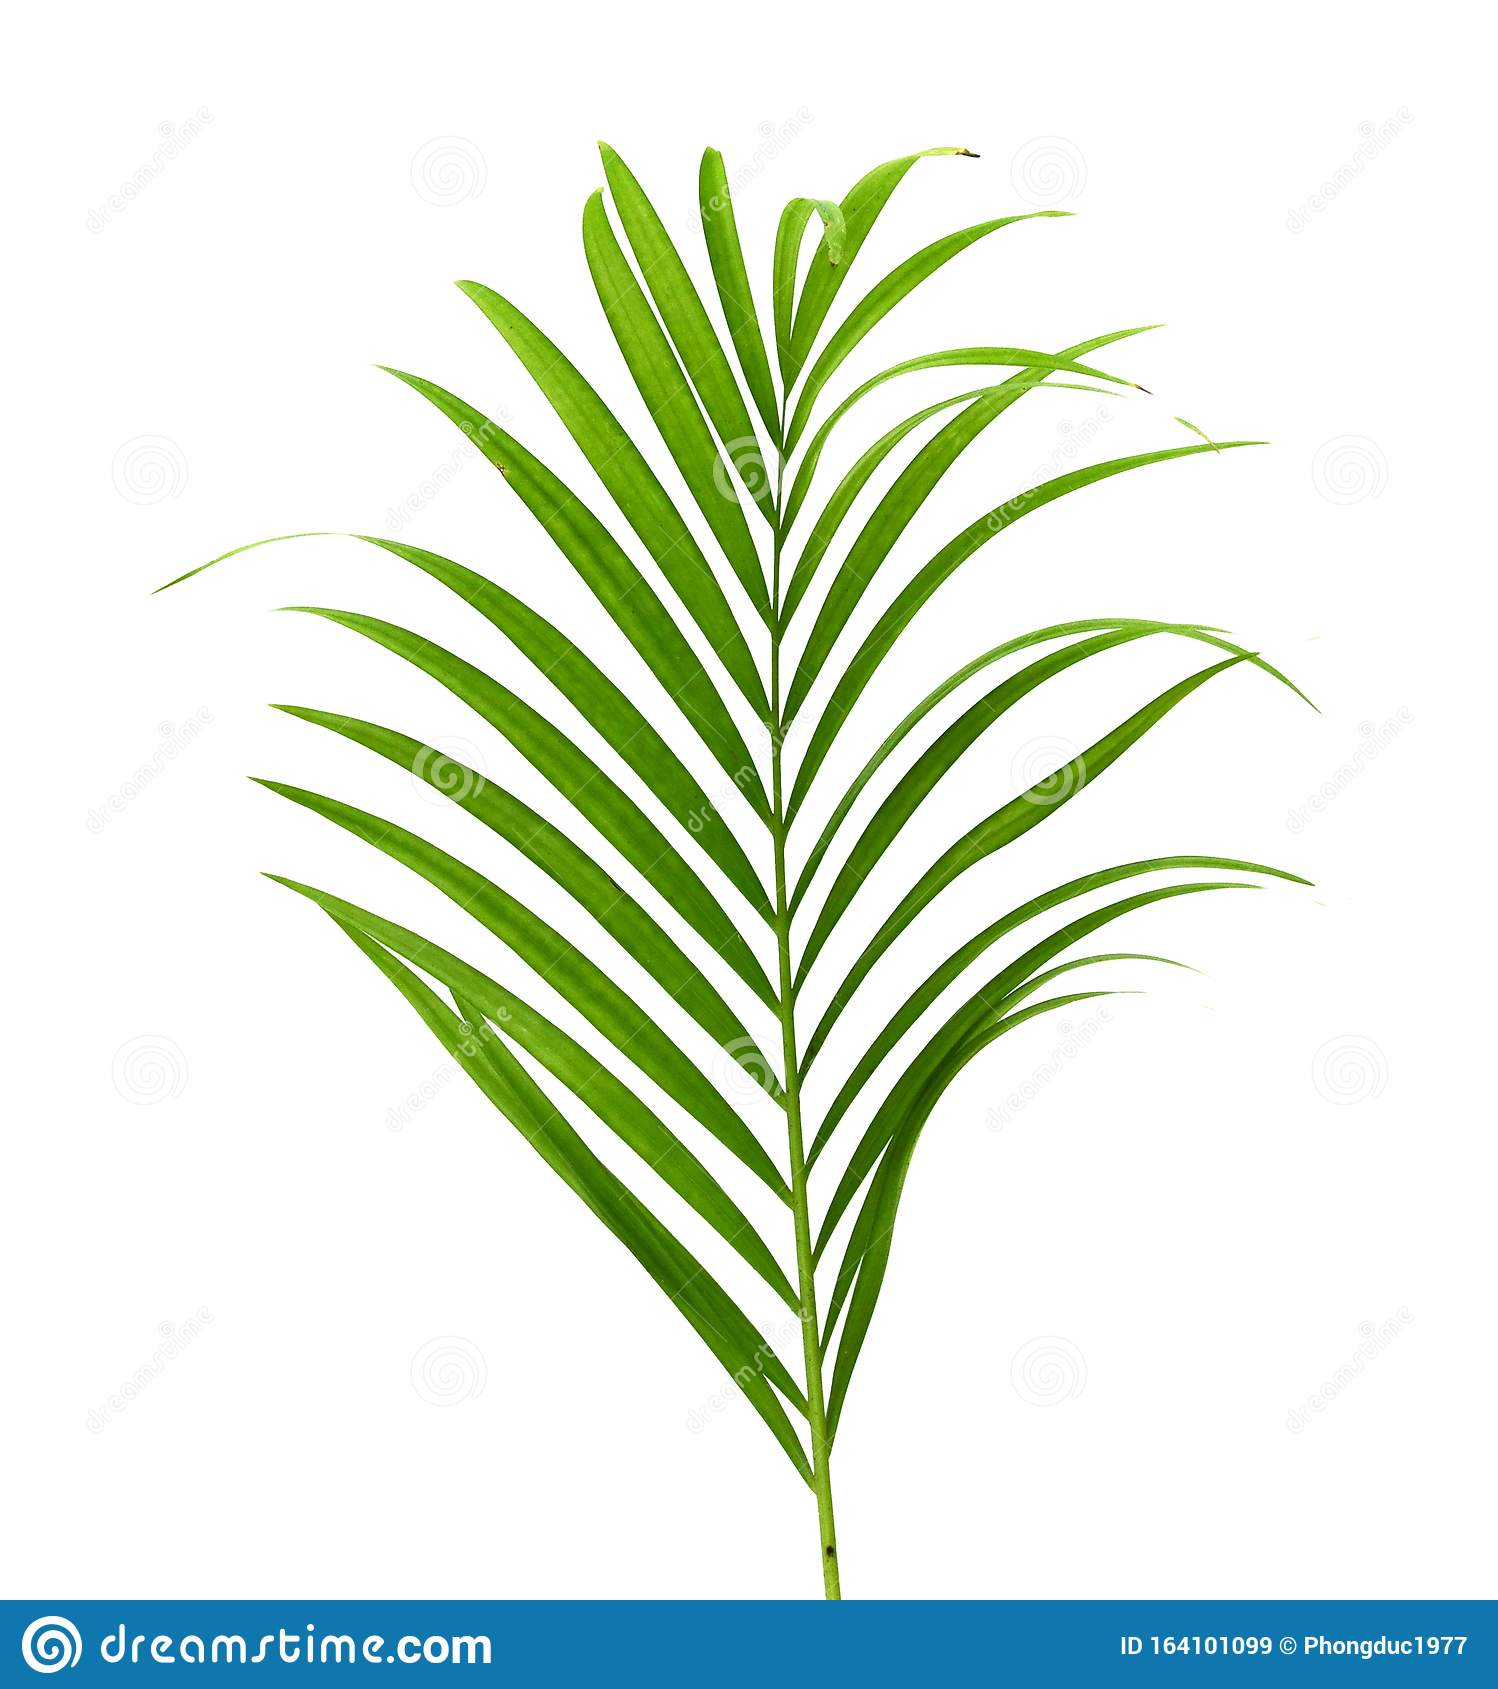 Yellow Palm Leaves Dypsis Lutescens Or Golden Cane Palm Areca Palm Leaves Tropical Foliage Isolated On White Background Stock Image Image Of Palm White 164101099